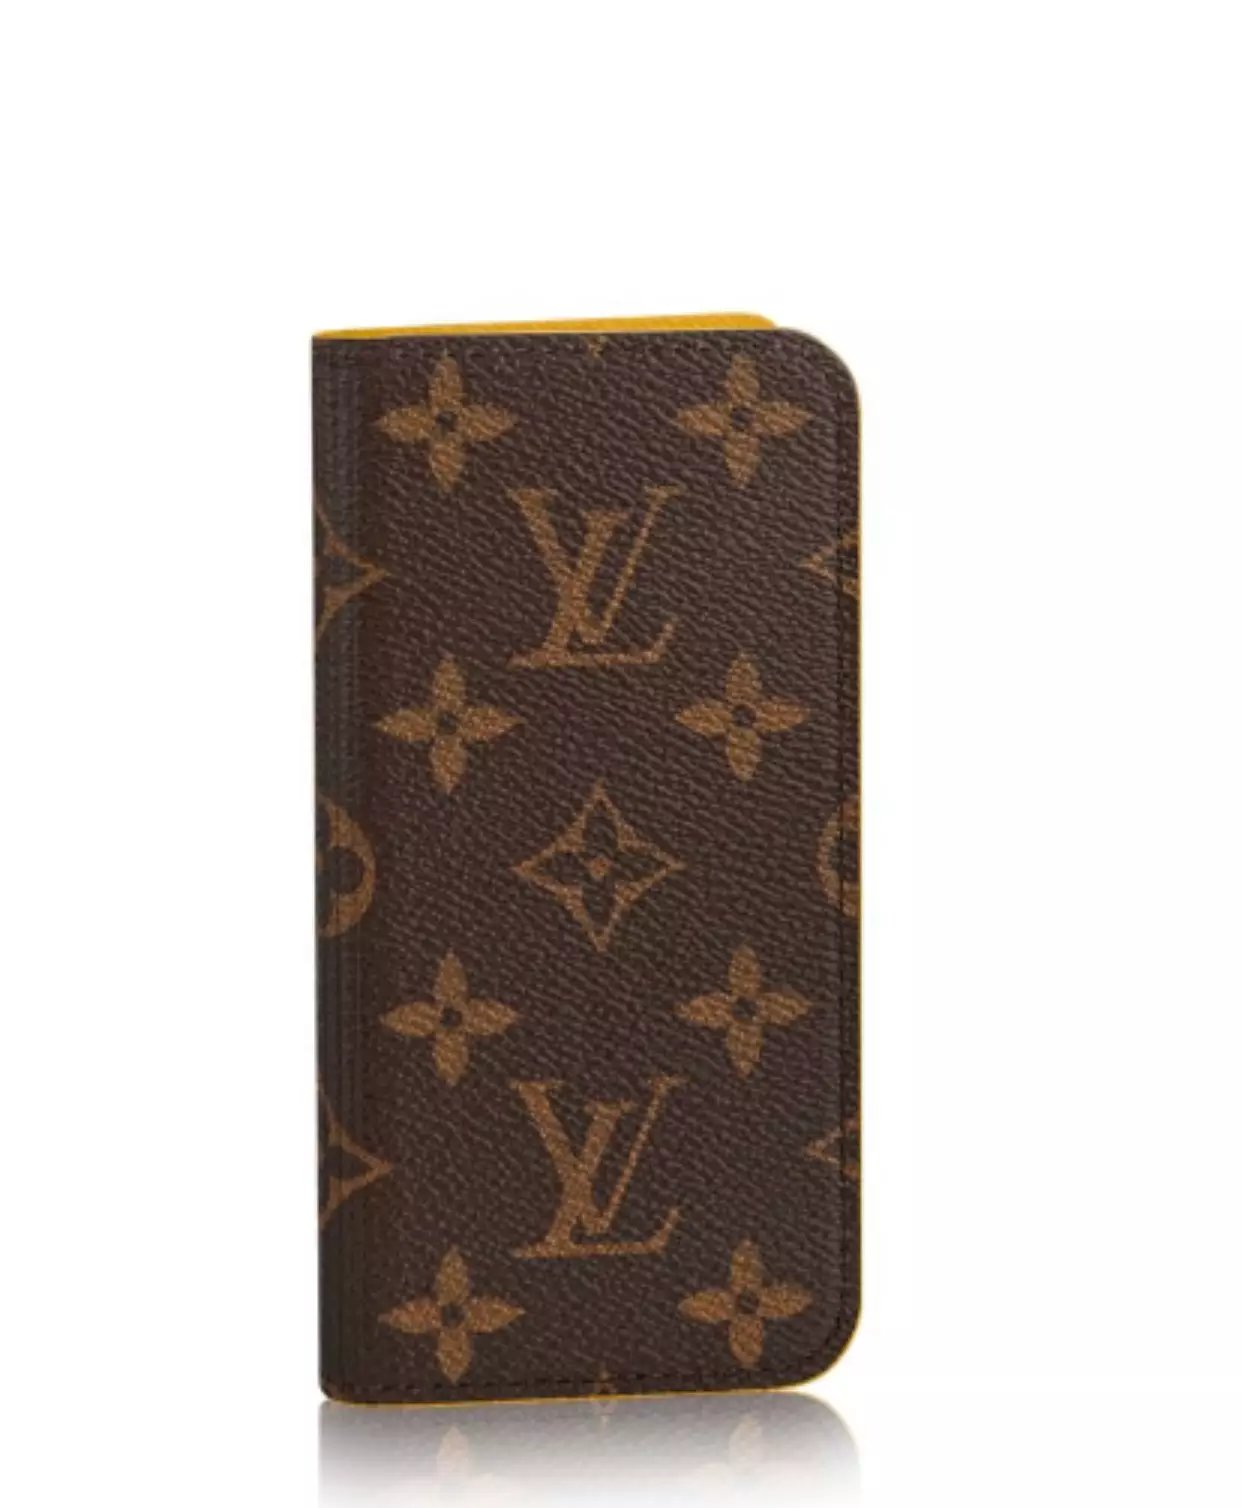 iphone hüllen iphone hülle eigenes foto Louis Vuitton iphone7 Plus hülle wann kommt das neue iphone handy foto cover iphone 7 Plus und 6 handy hülle samsung iphone 7 Plus s hülle 7lbst gestalten chanel handyhülle iphone 7 Plus